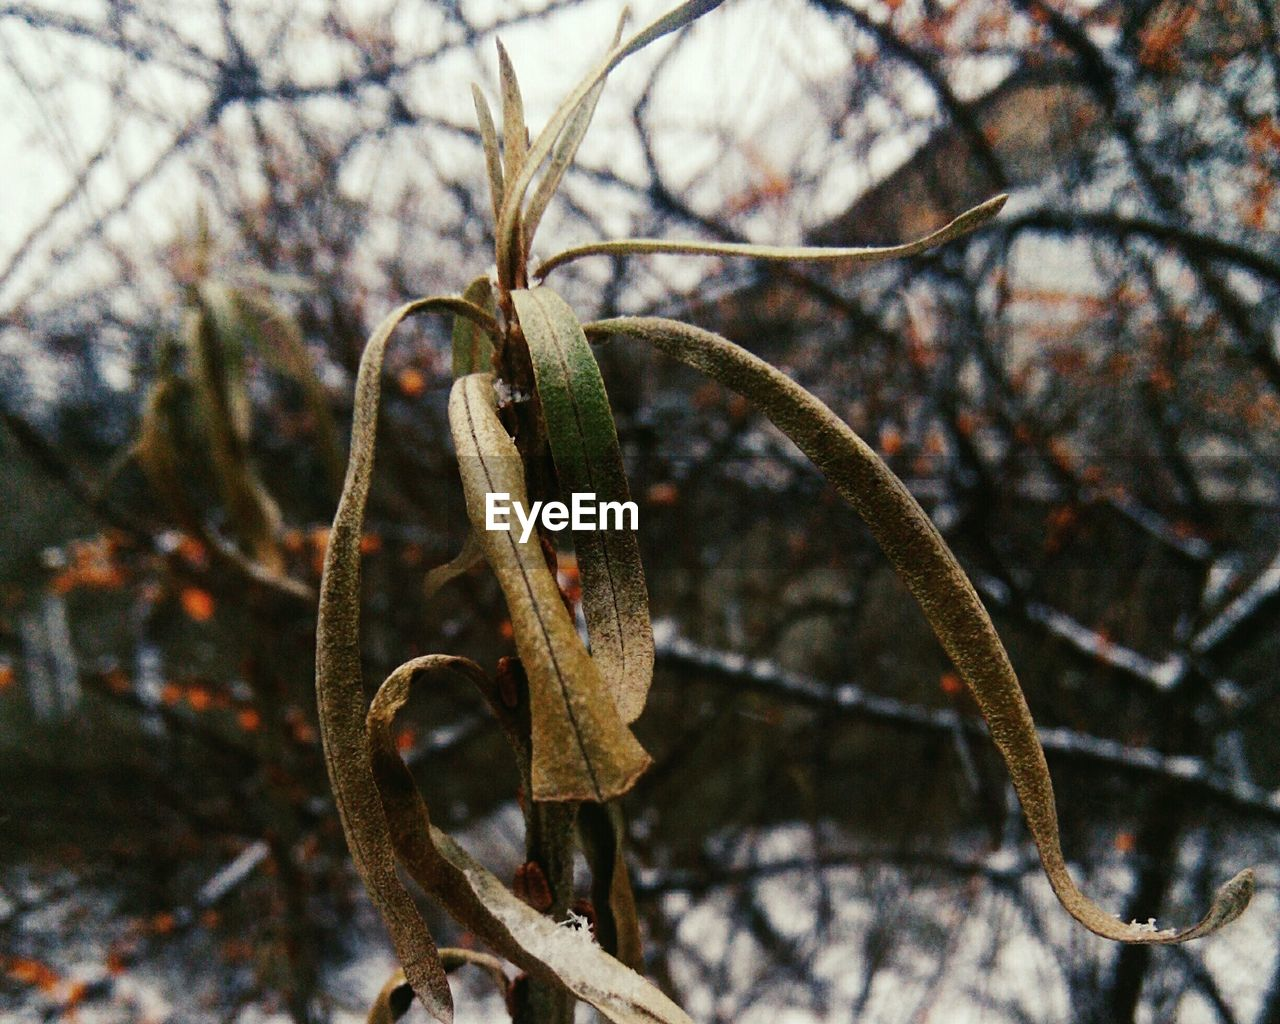 no people, focus on foreground, nature, day, close-up, rusty, outdoors, branch, winter